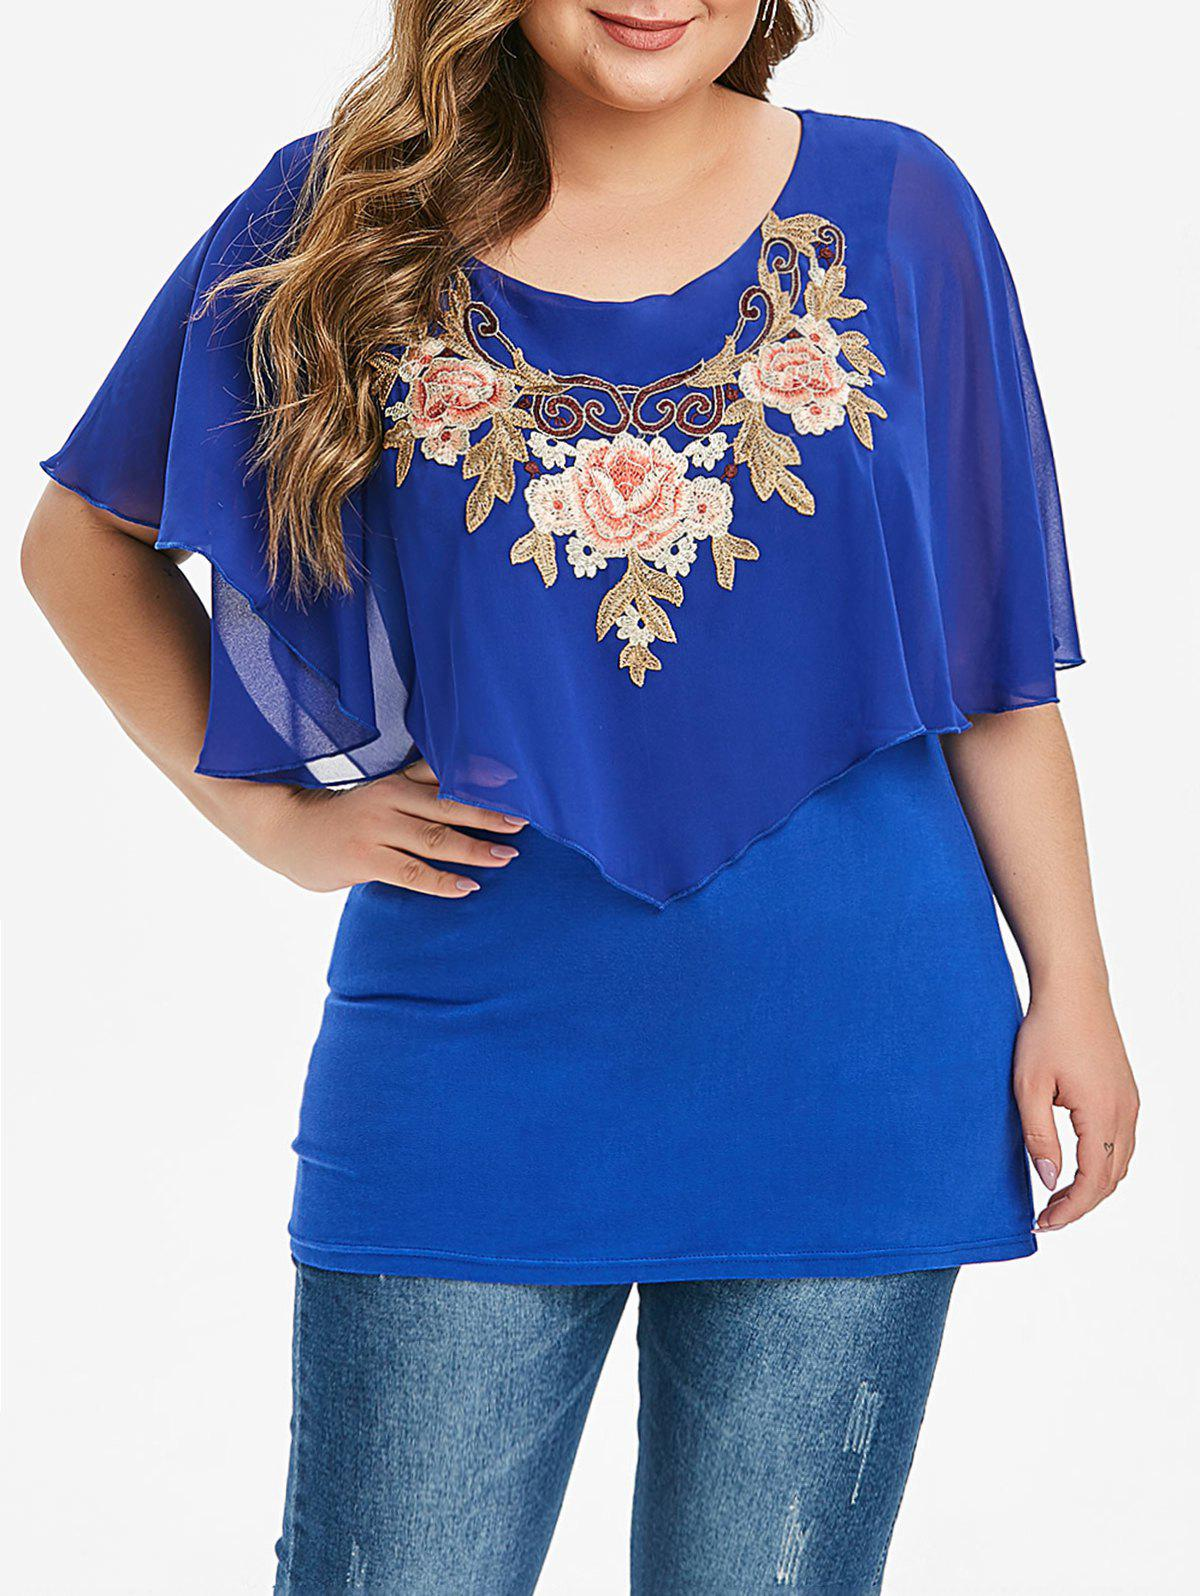 Floral Embroidered Overlay Chiffon Panel Plus Size Blouse - BLUE L